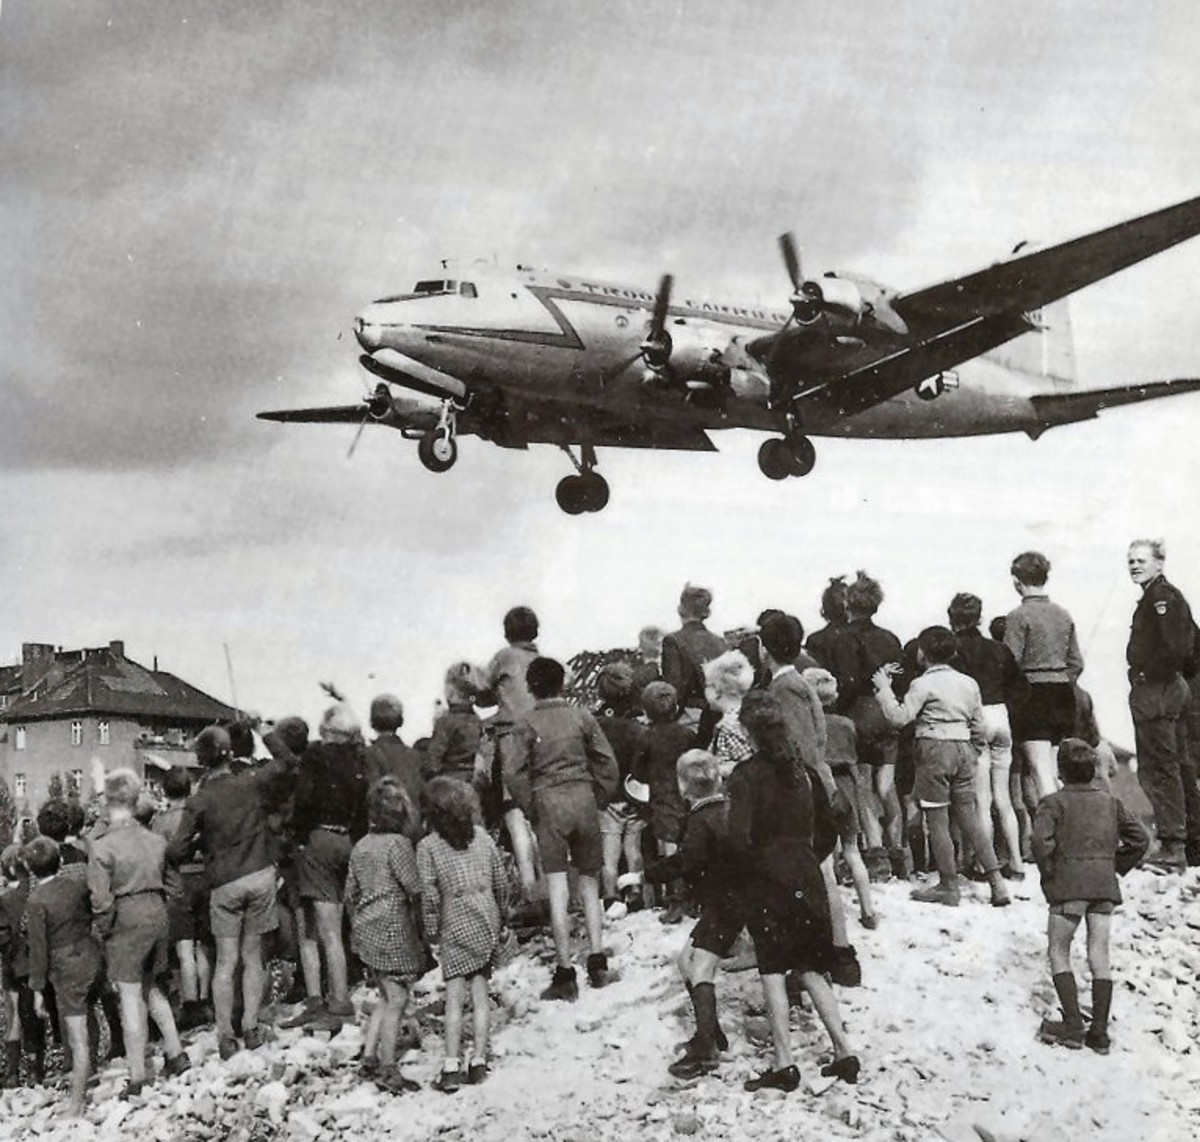 Cold War History: Gail Halvorsen— Uncle Wiggly Wings the Berlin Candy Bomber